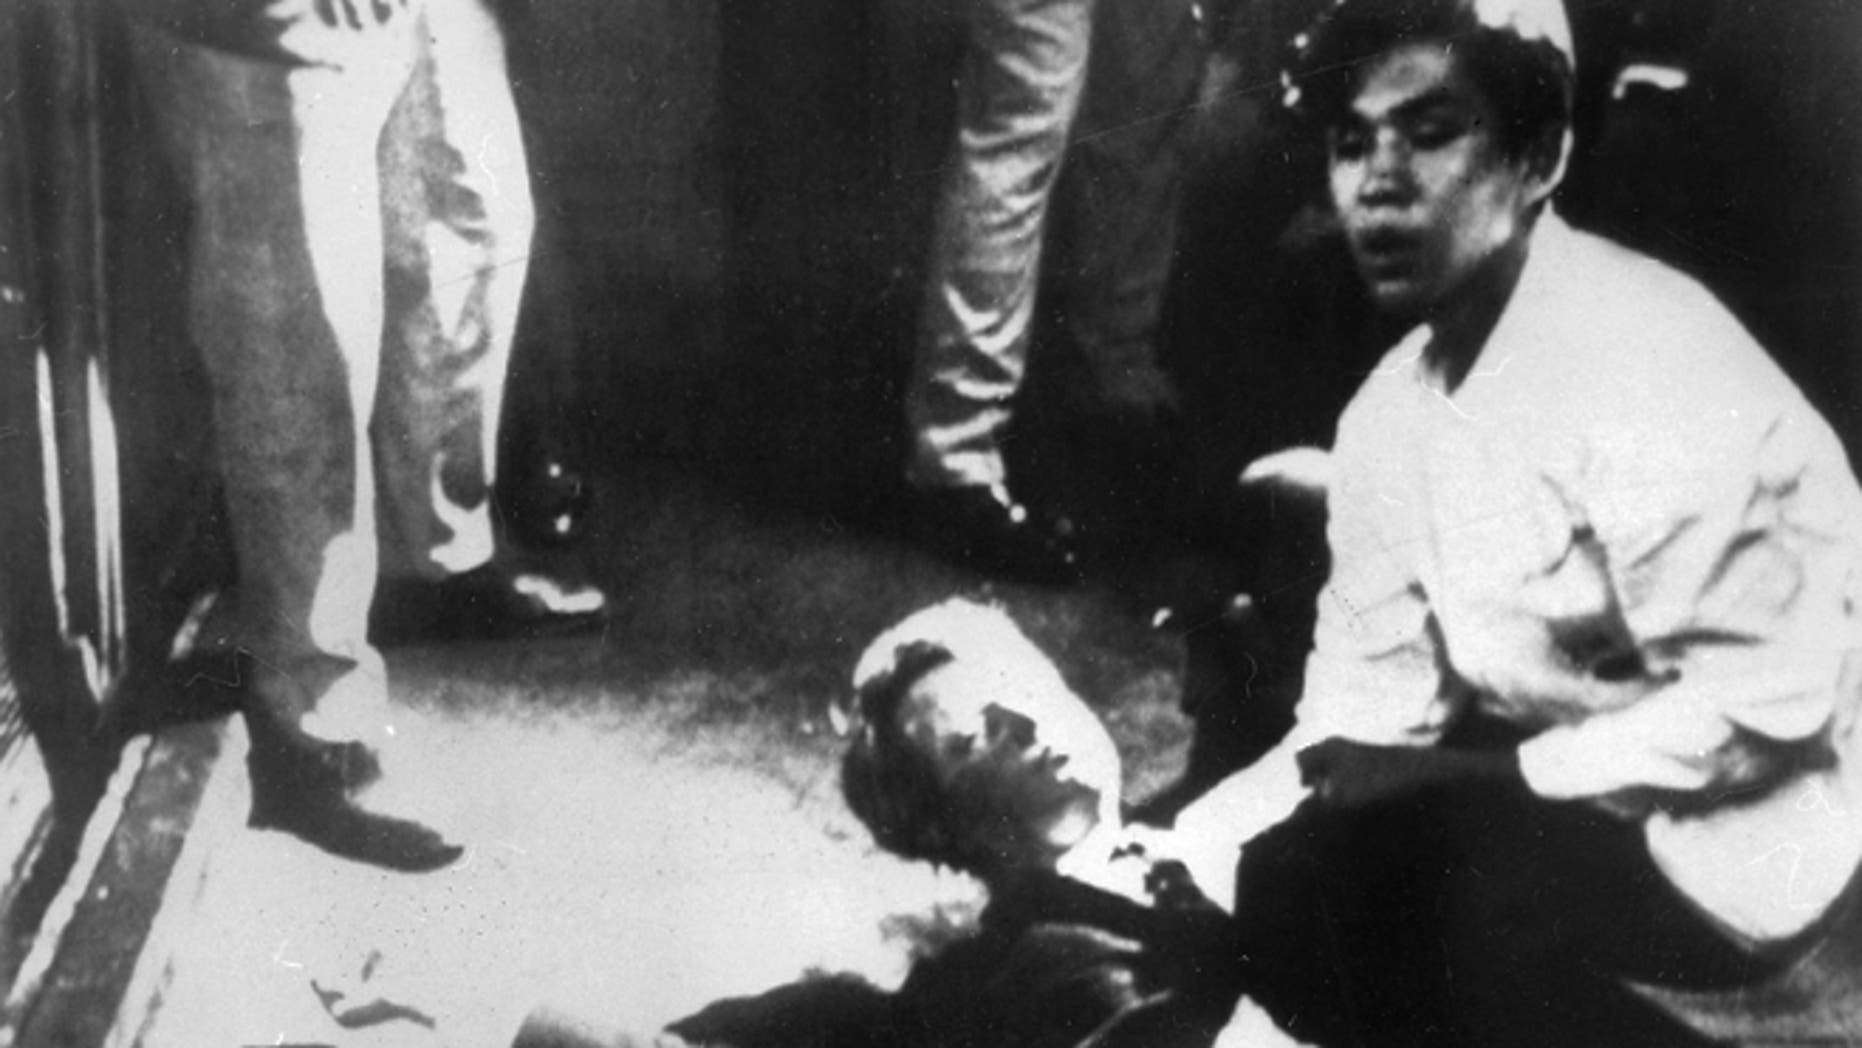 Robert F. Kennedy on the floor after being shot, with a 17-year-old Juan Romero cradling his head. (Photo: Getty Images)